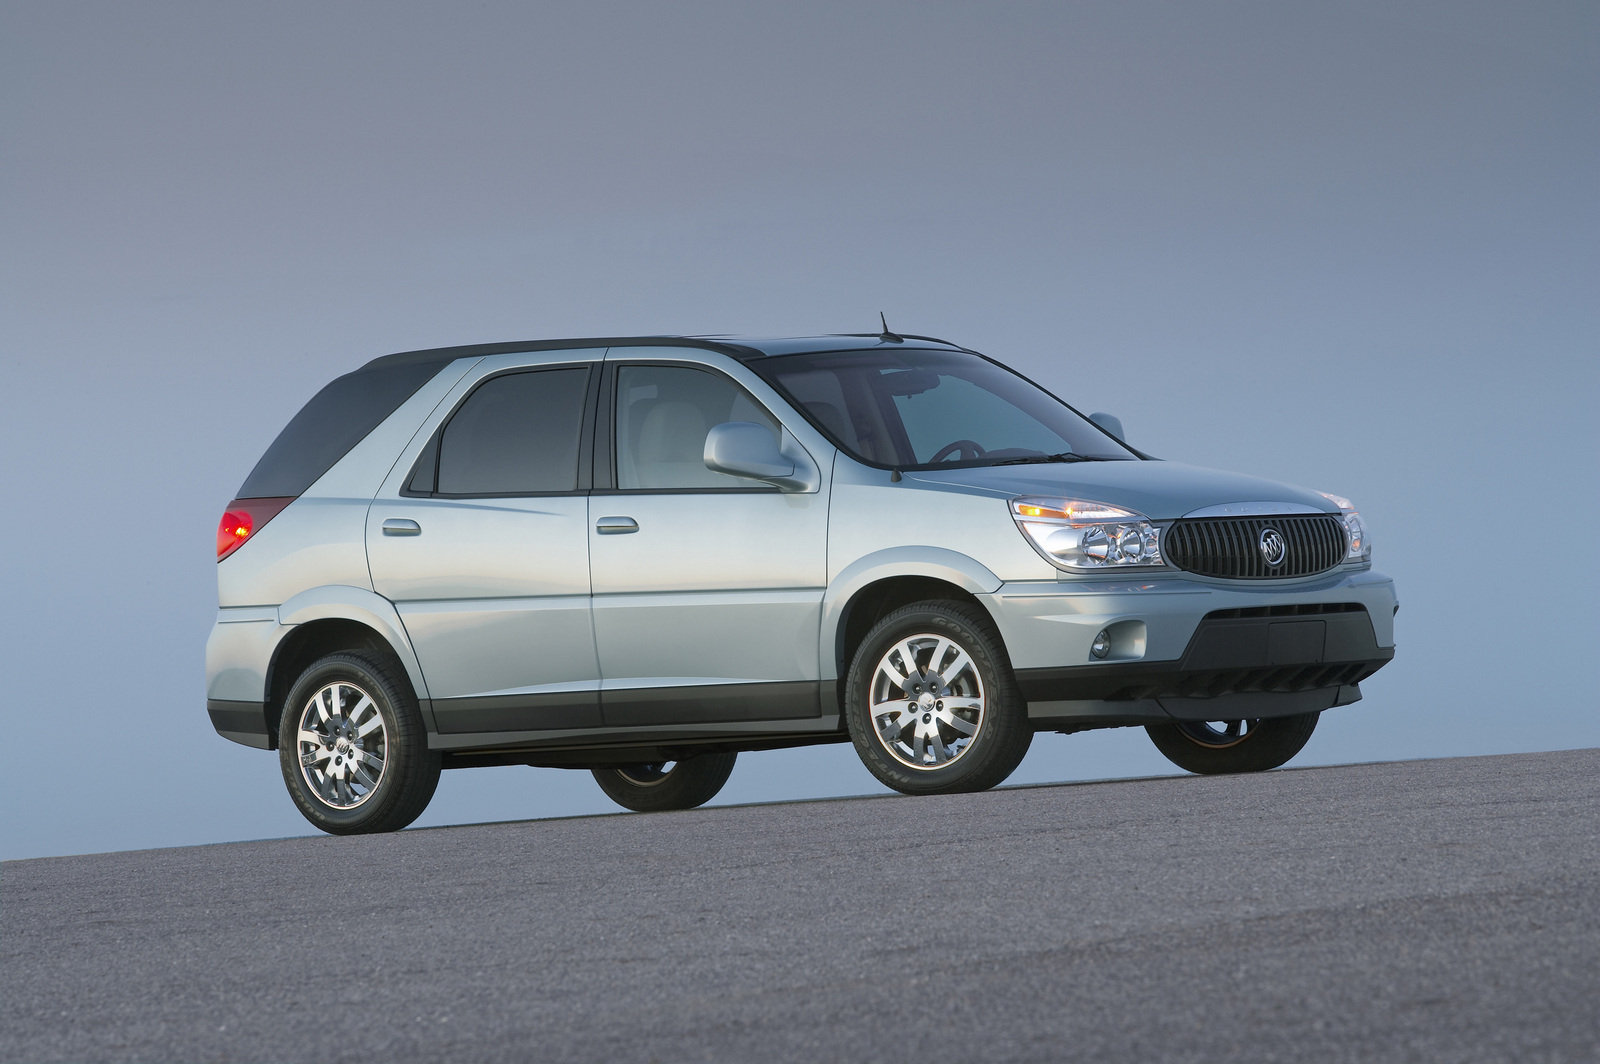 2006 buick rendezvous picture 89503 car review top speed. Cars Review. Best American Auto & Cars Review